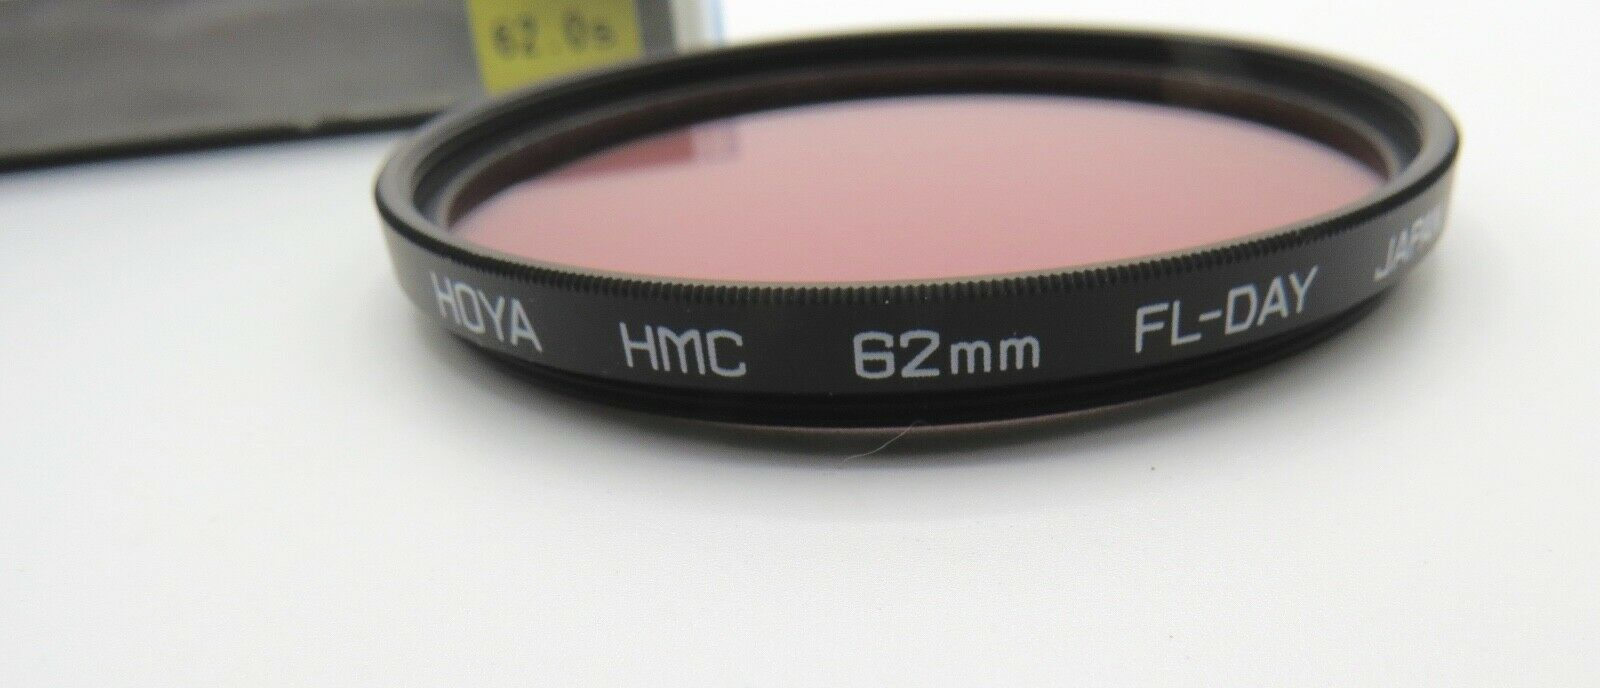 Primary image for HOYA - HMC - FL Day Filter 62mm - w/ Box & Instructions - Super Clean Condition